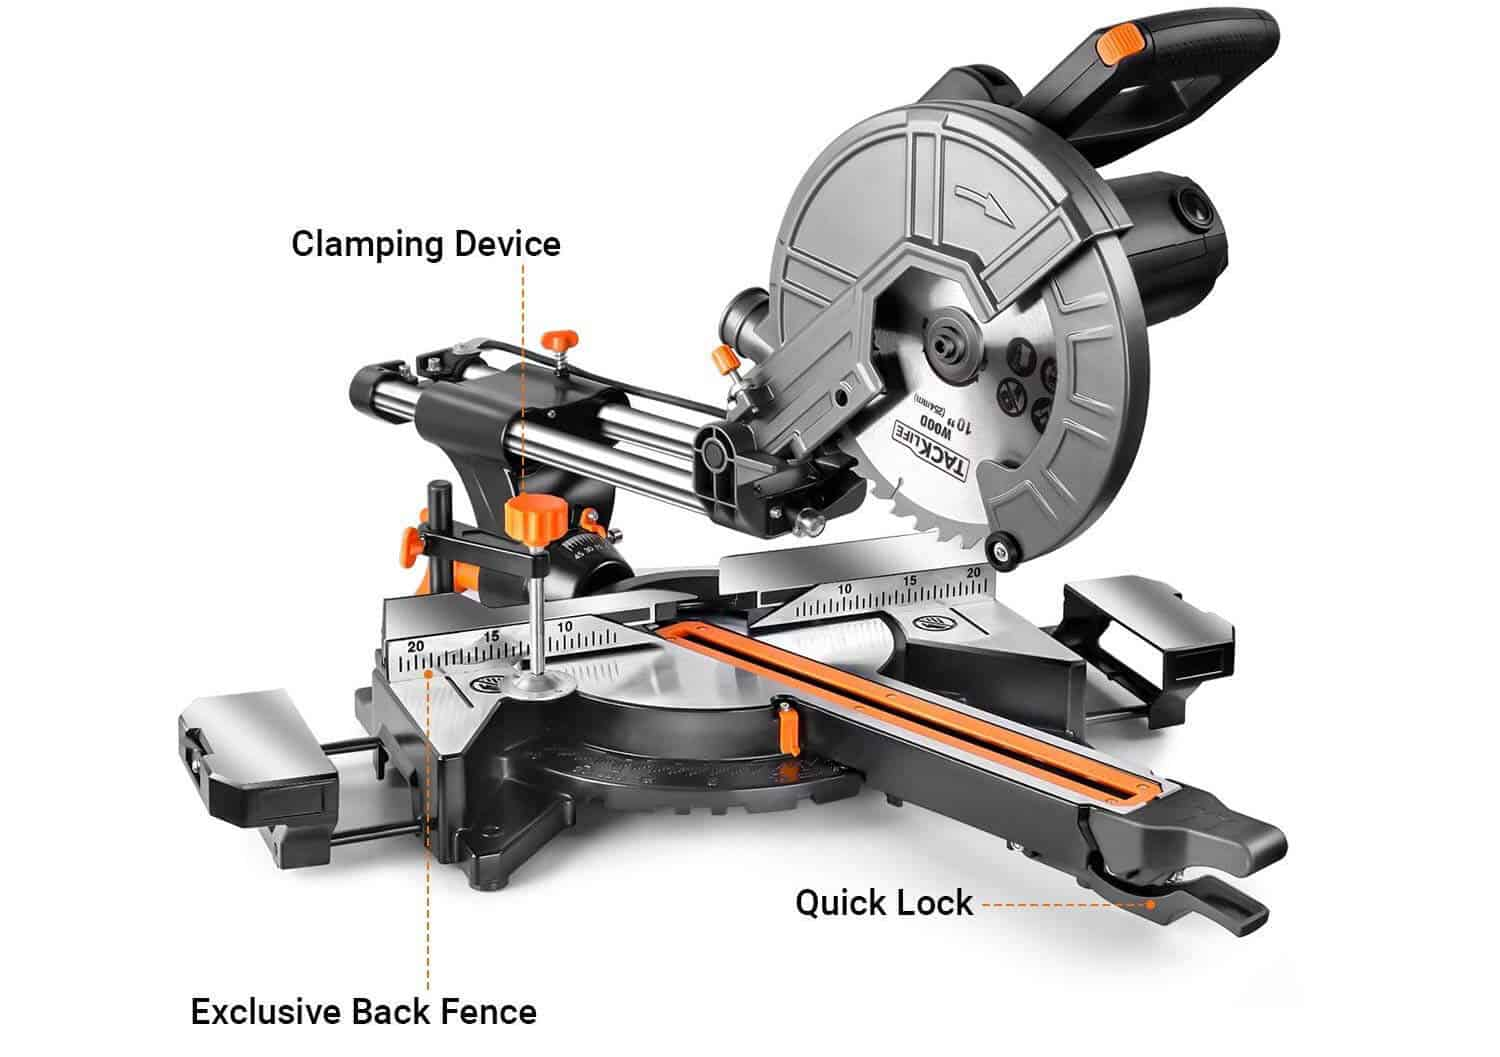 Tracklife 15 AMP 10-Inch Sliding Compound Miter Saw